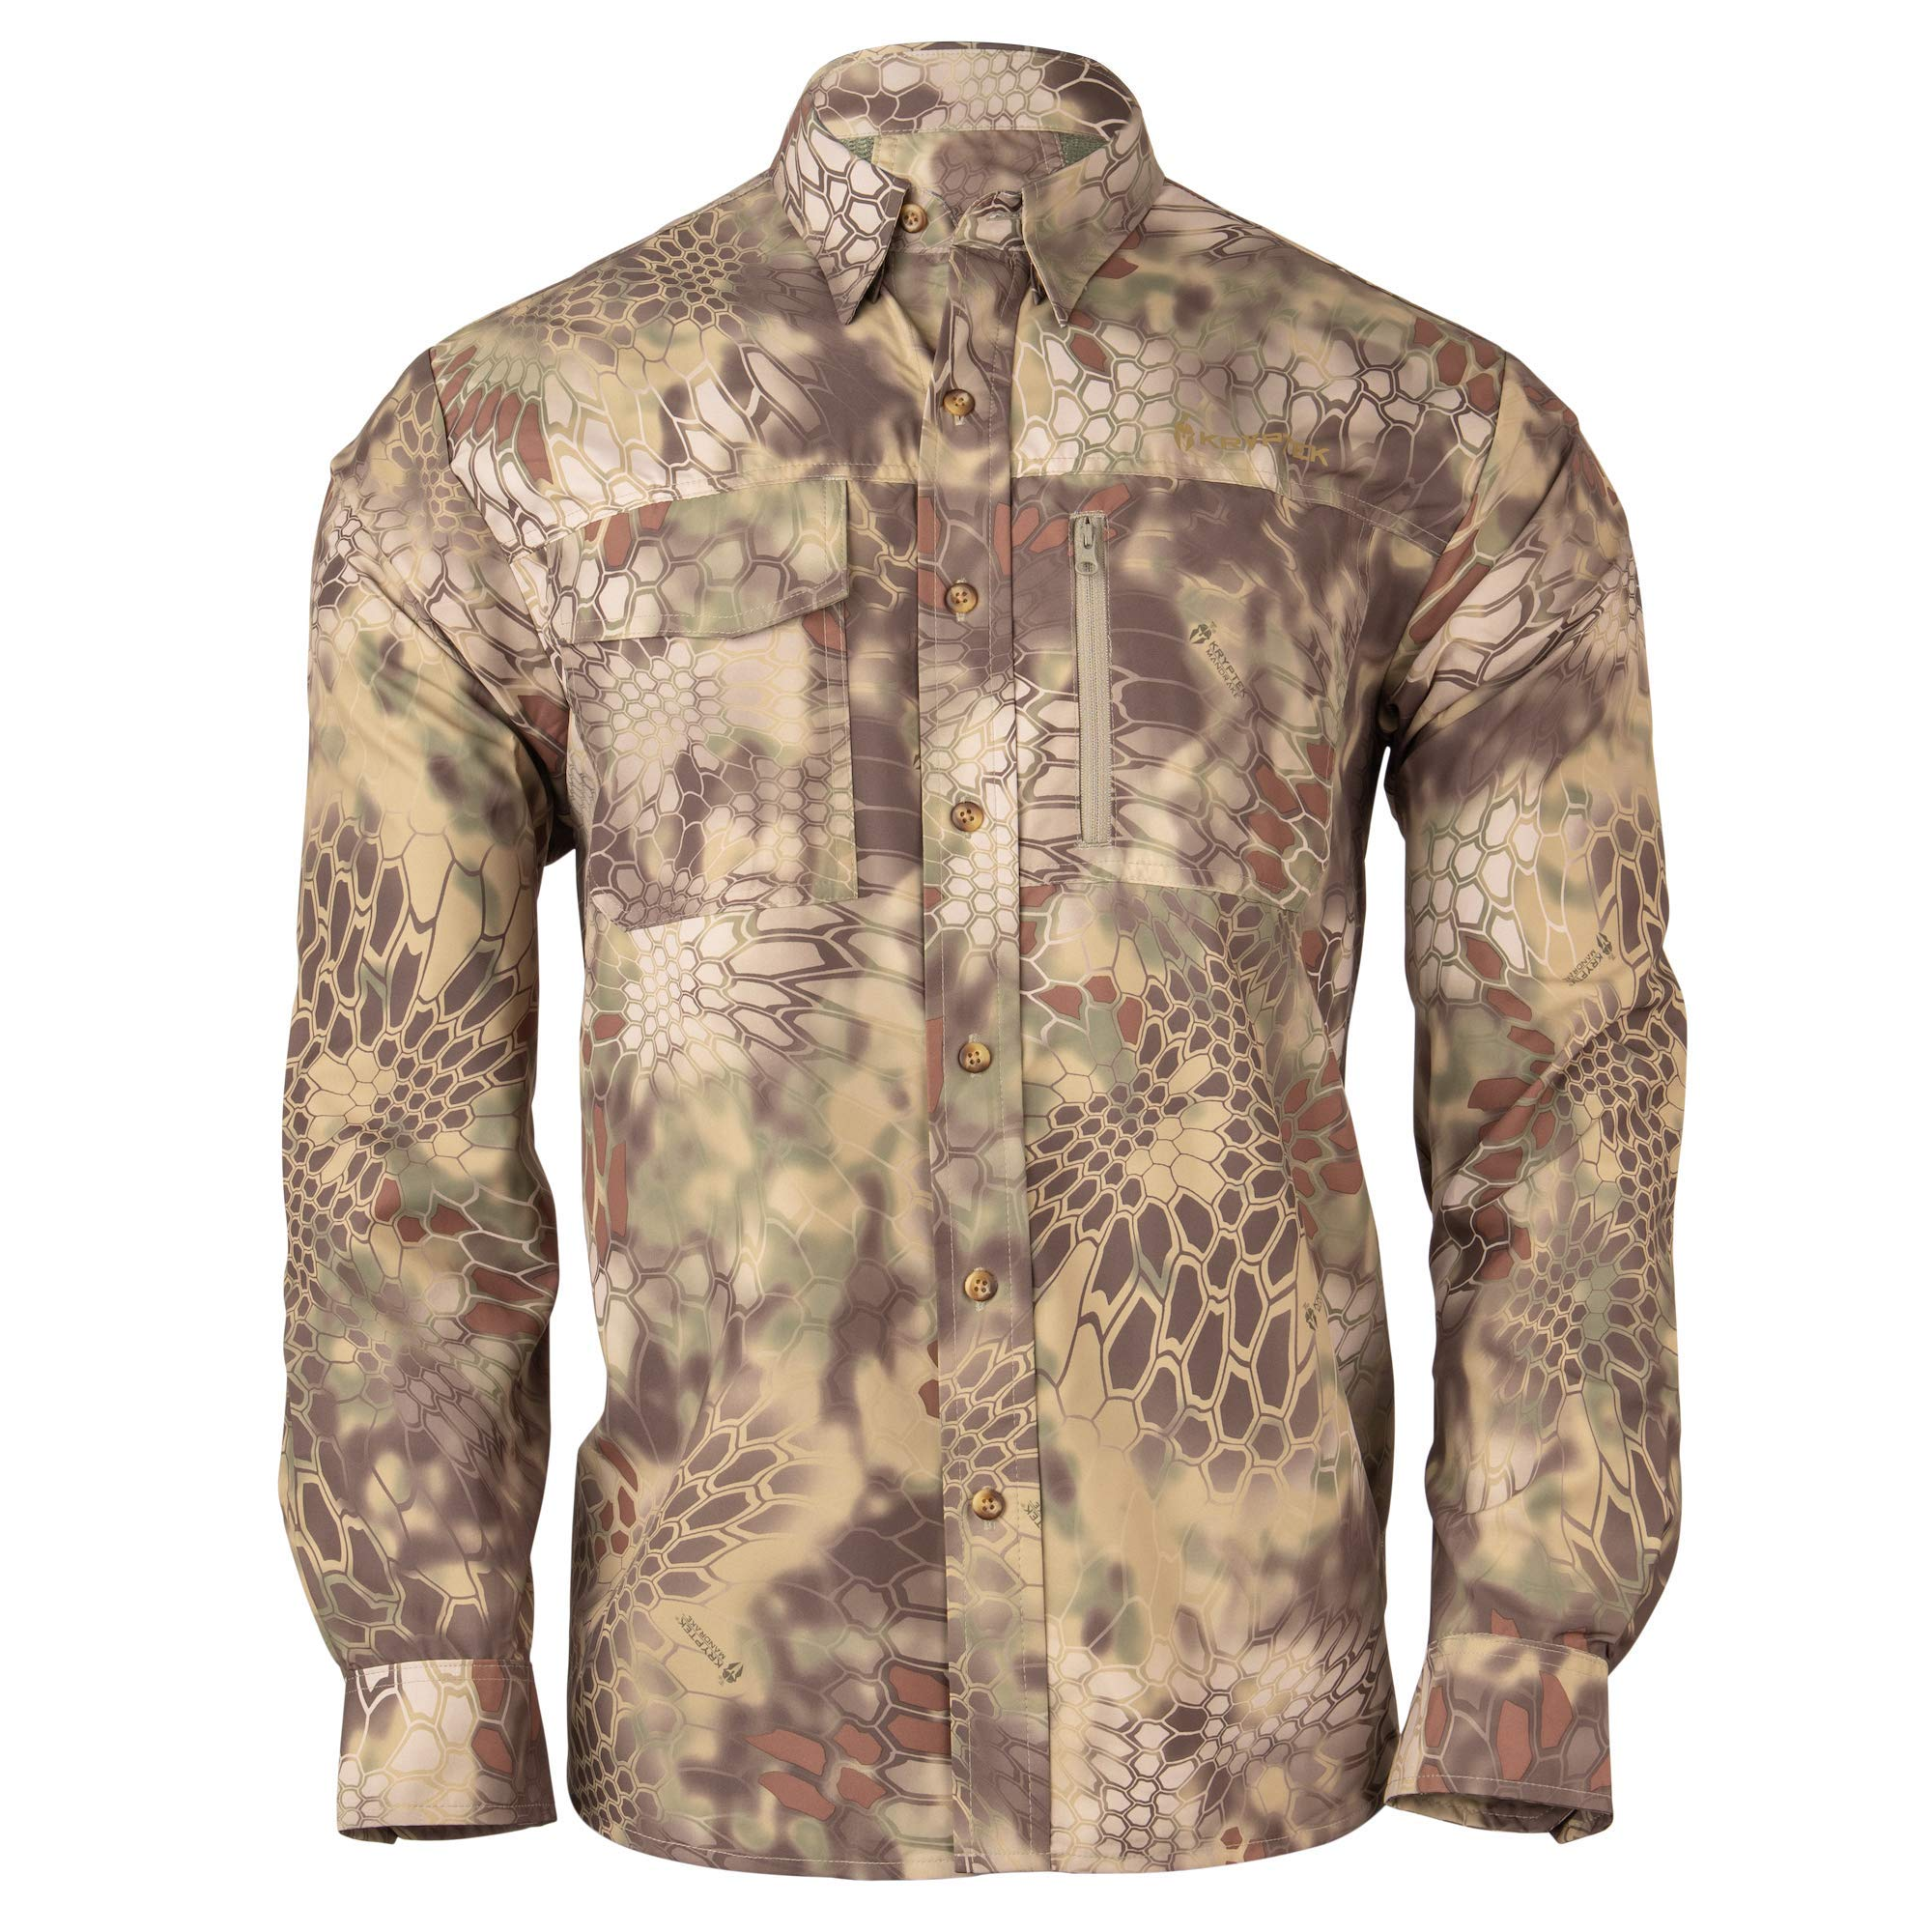 Kryptek Adventure 3 Long Sleeve Camo Hunting Shirt (Valhalla Collection), Mandrake, XL by Kryptek